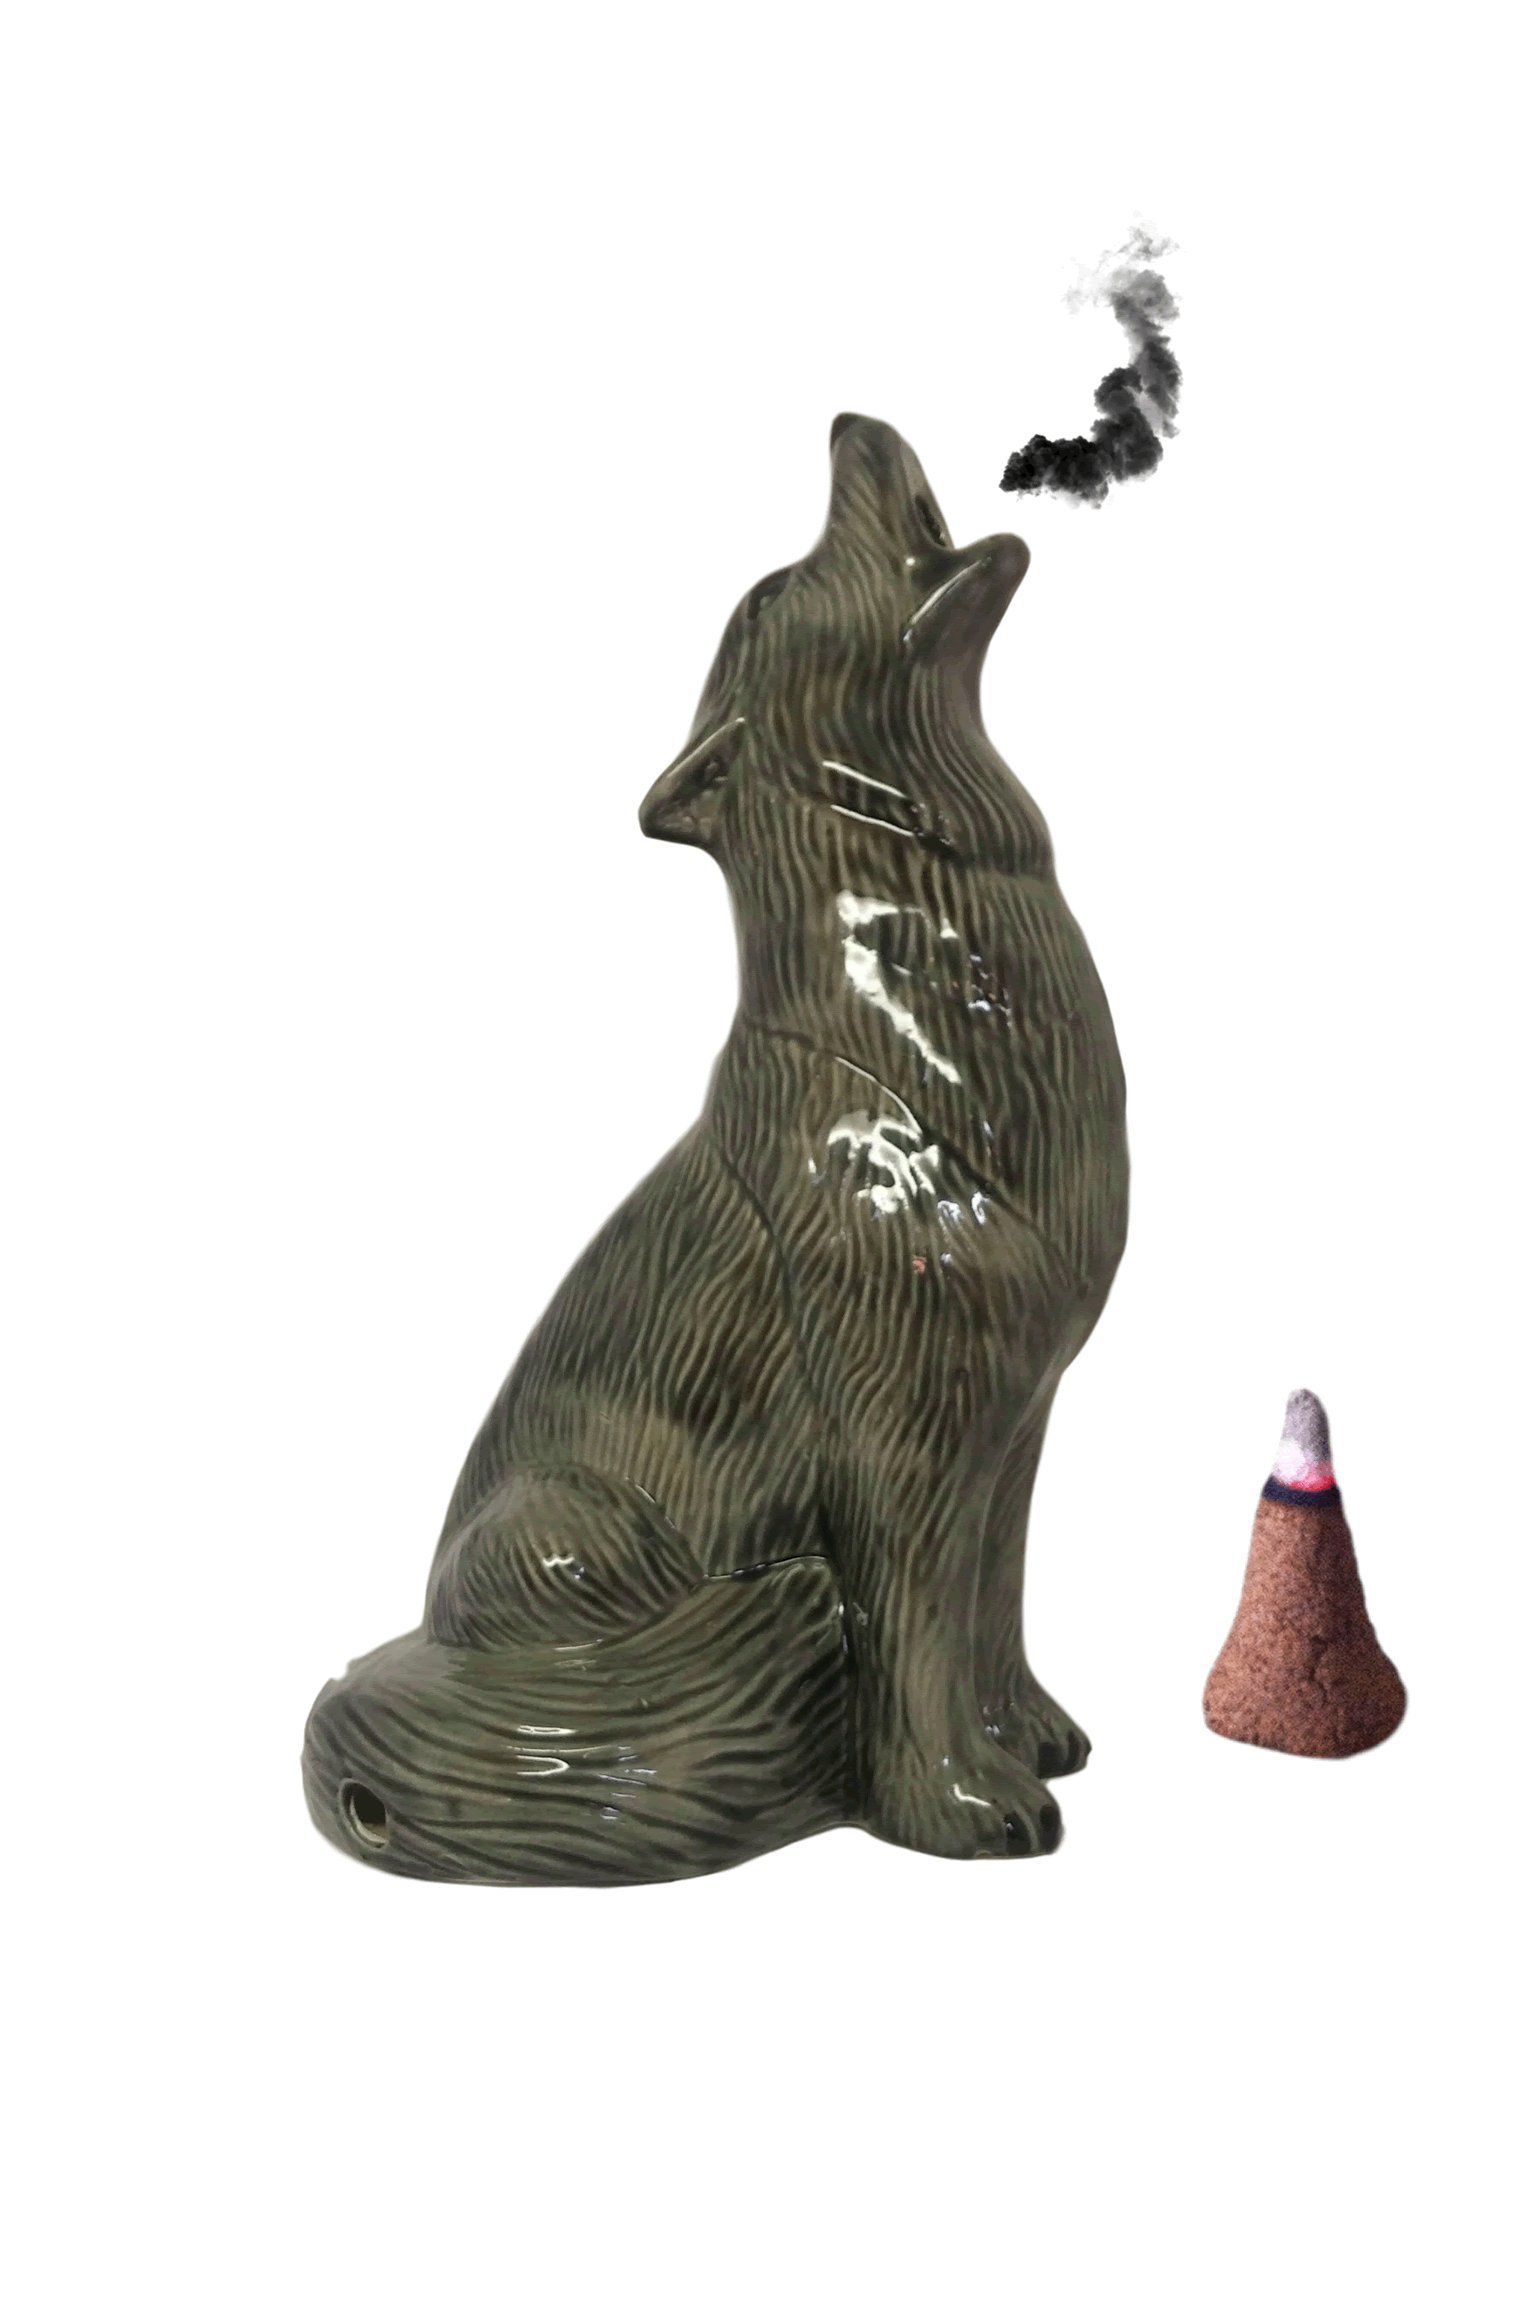 Mom's Majestics - 2018 Large Howling Wolf Smoking Cone Incense Burner (Glazed Black, Large)